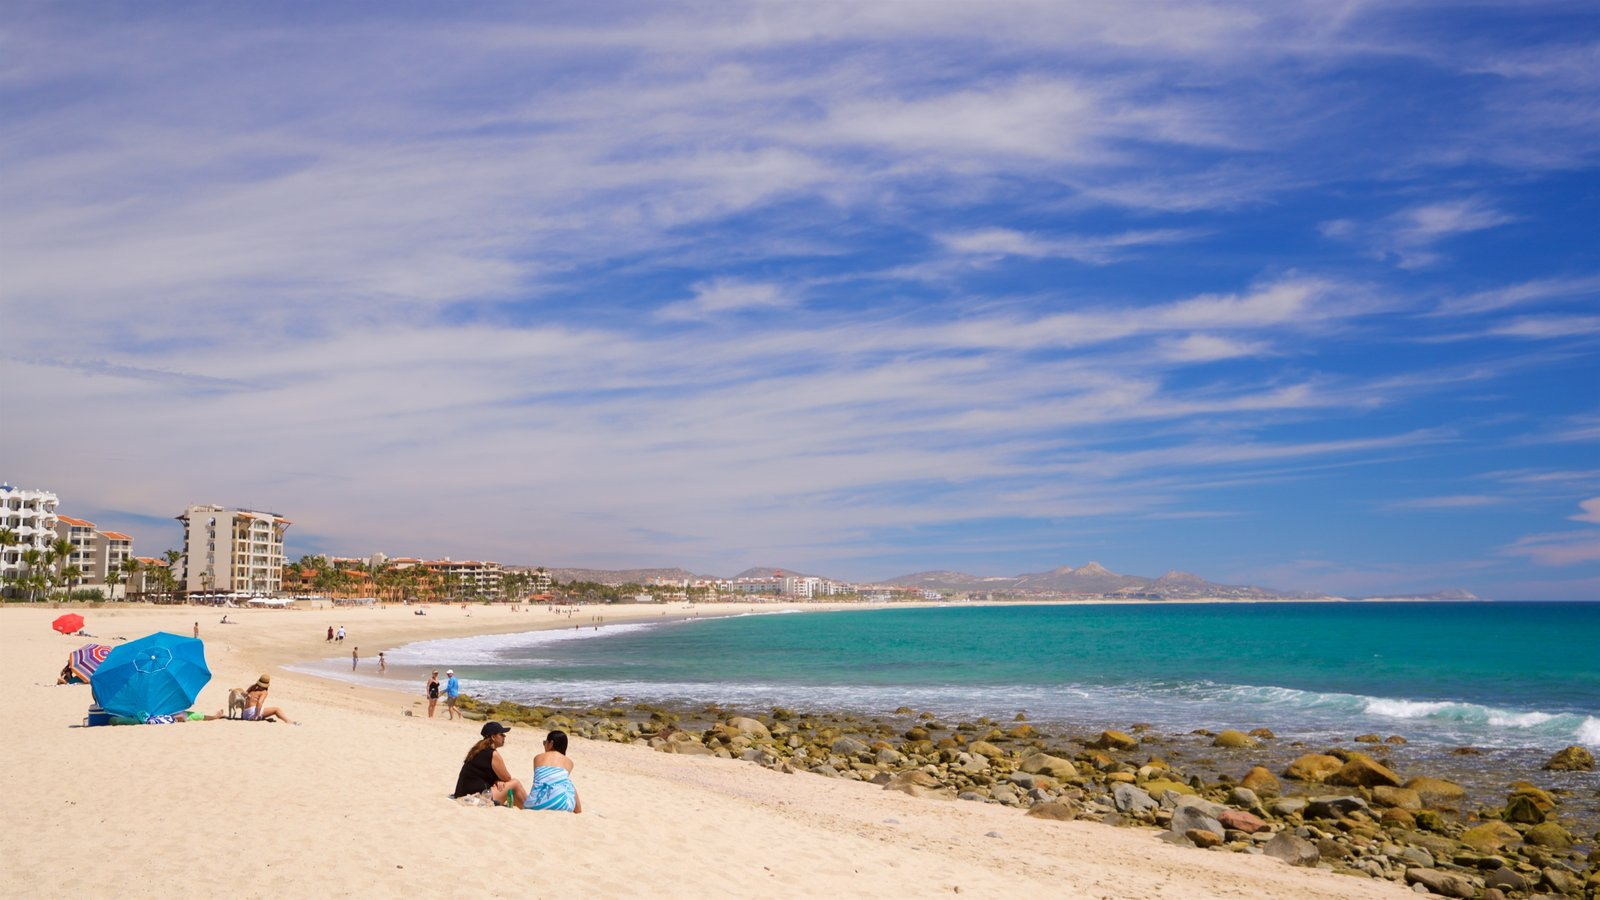 Costa Azul Beach which includes general coastal views and a beach as well as a couple